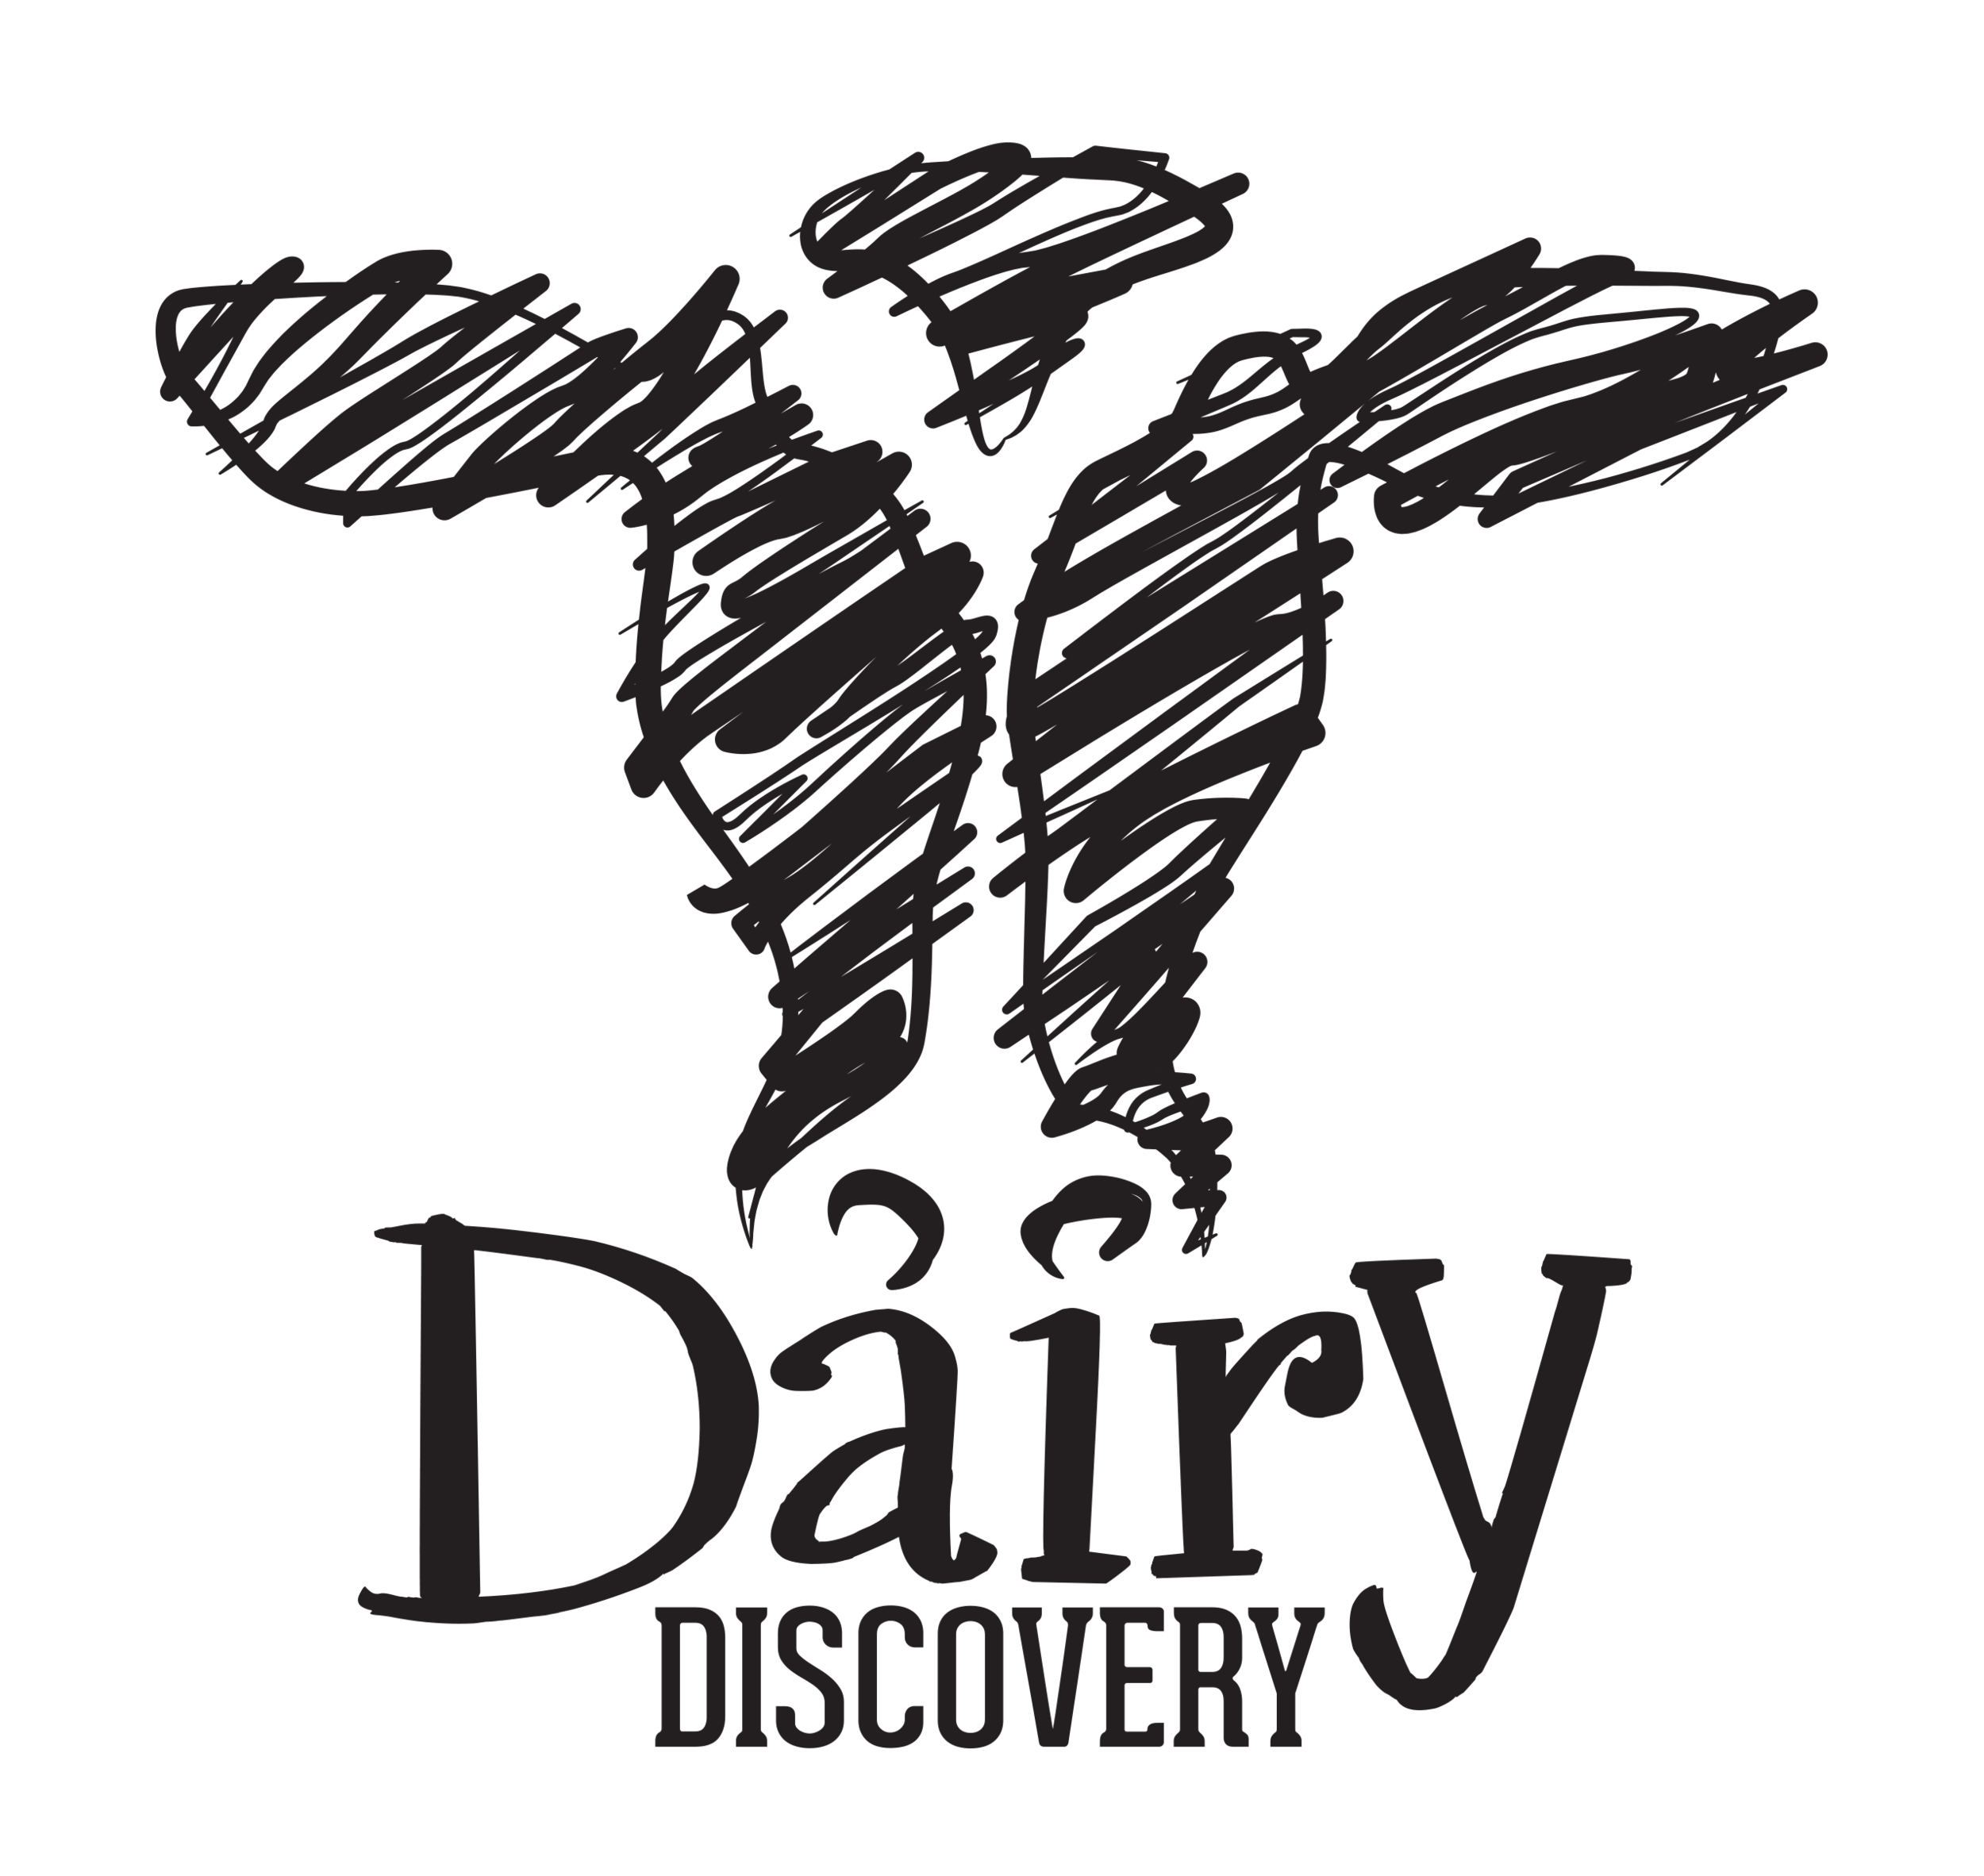 Auction/ Fundraiser 2018 - Did you hear the moo's? Come join us to support Dairy Discovery.September 18th 6:00